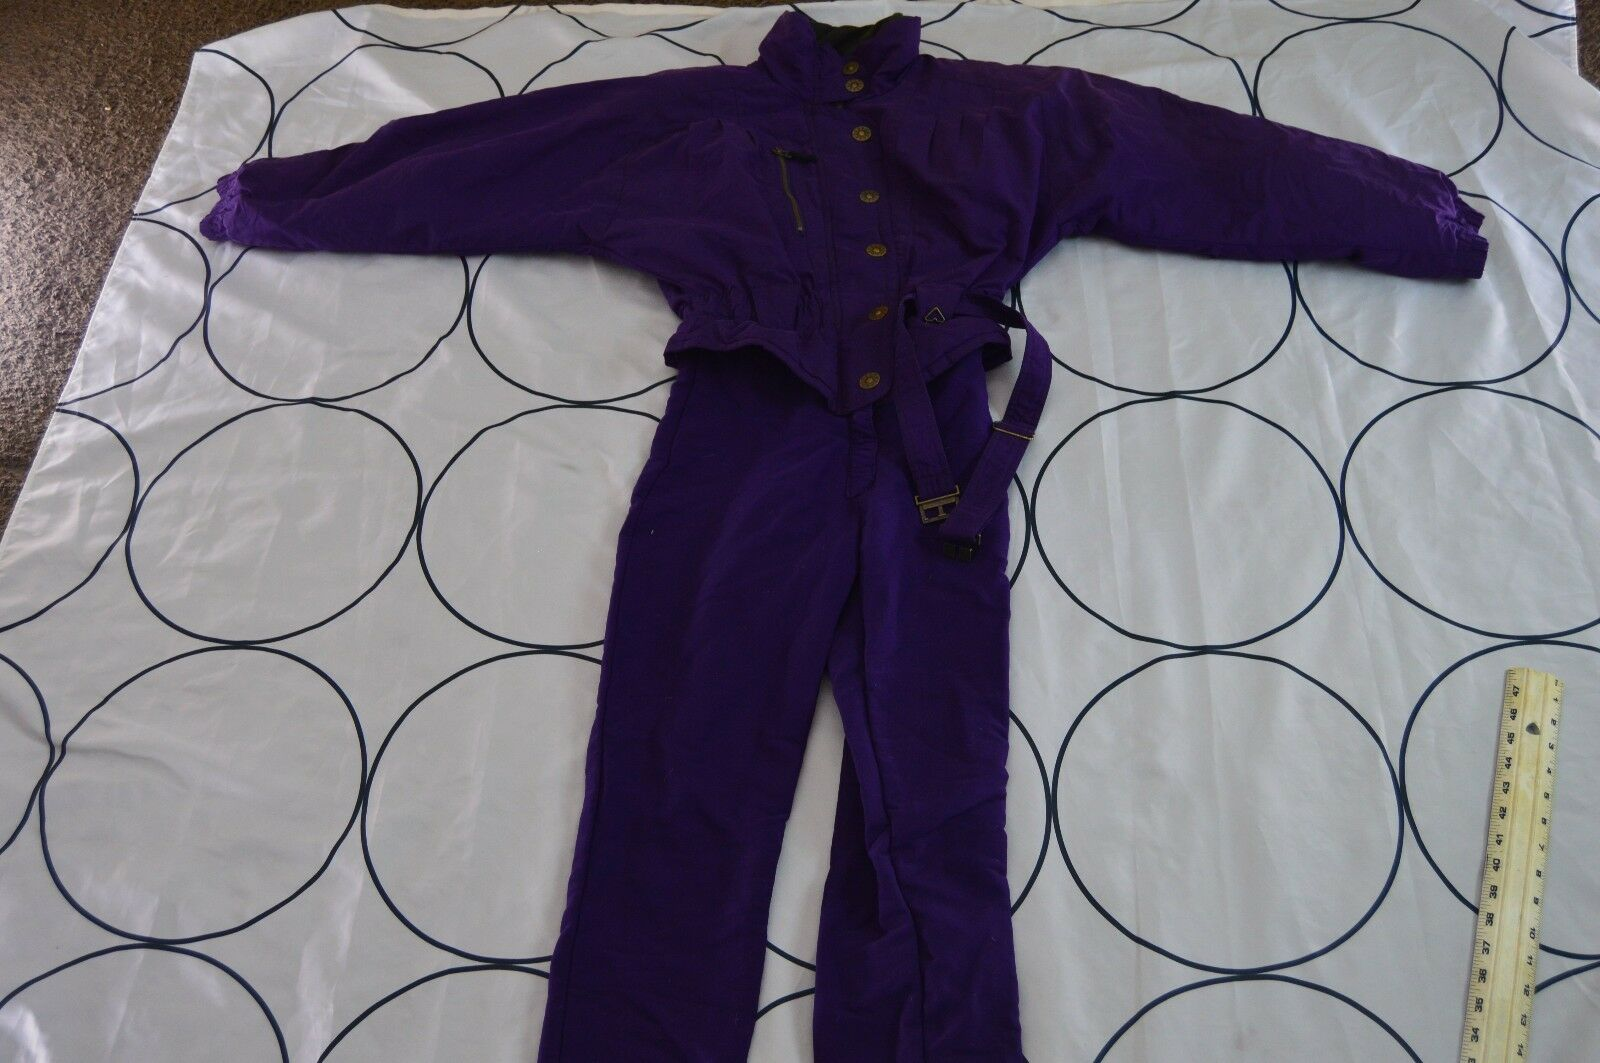 OBERMEYER  Full Body Snowboard Ski Suit WOMEN Size 8 Vintage 90s Purple One Piece  the best selection of